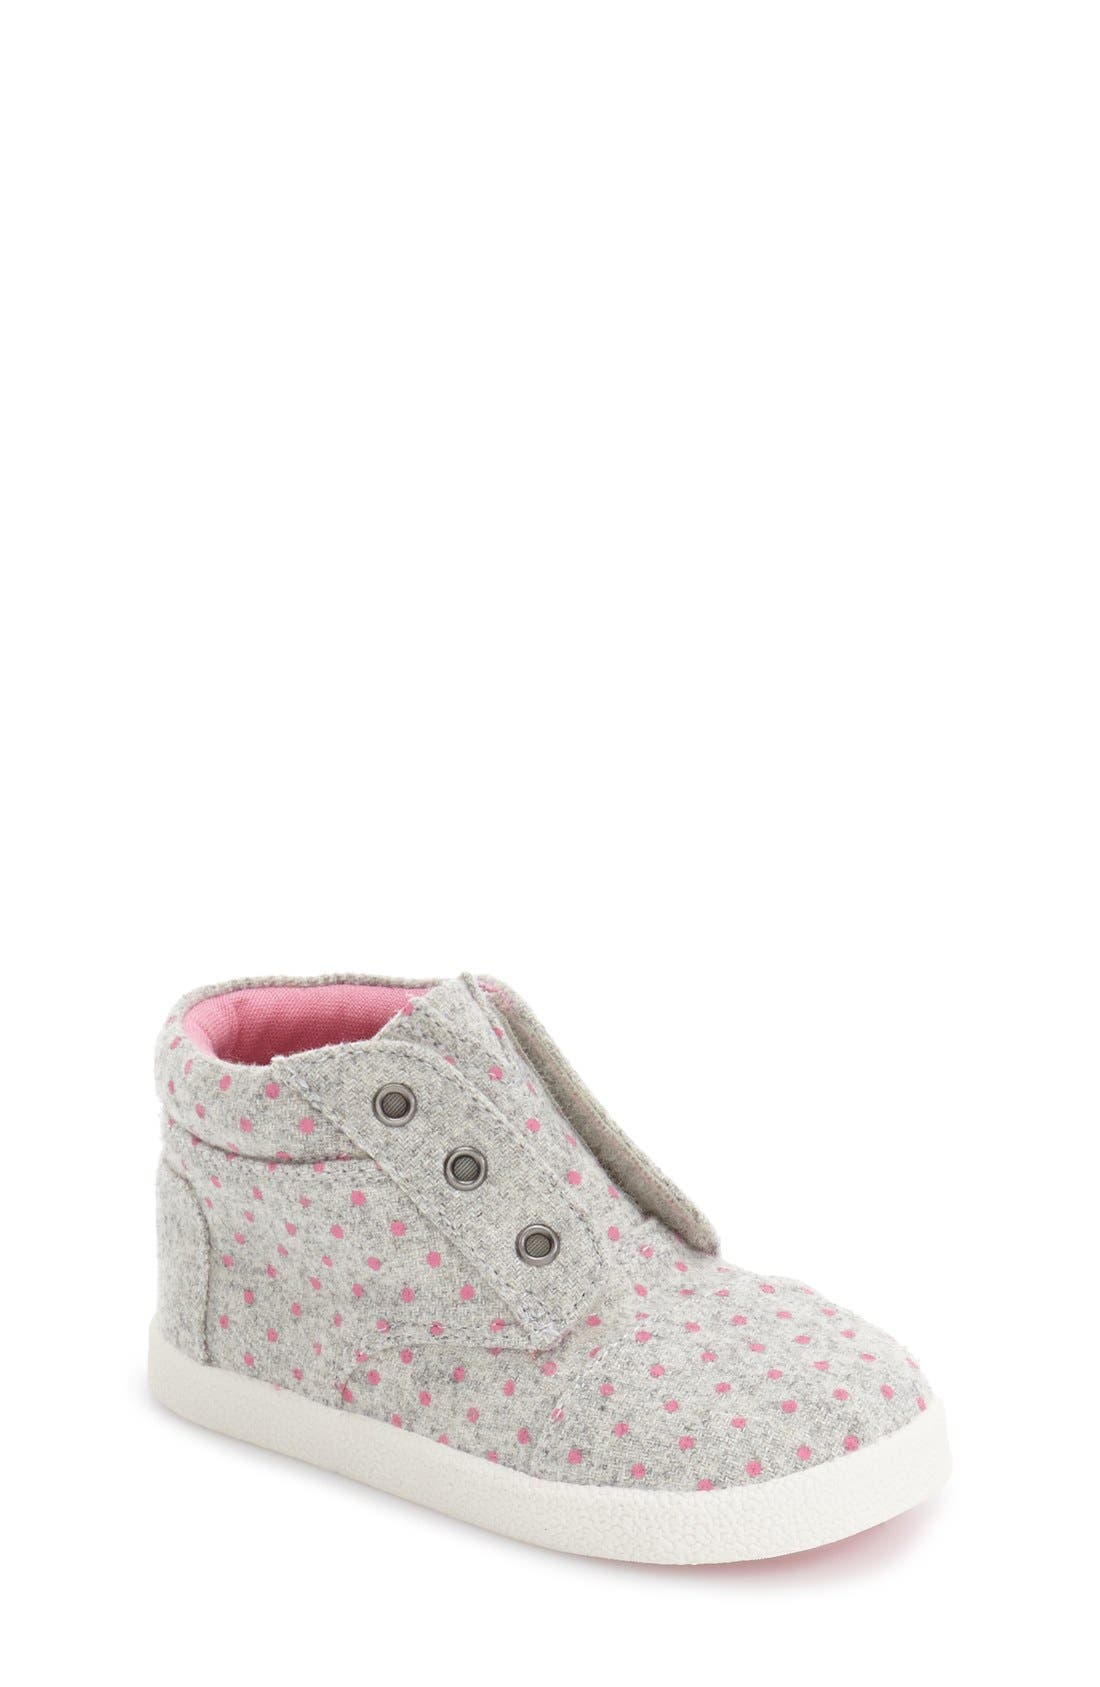 Main Image - TOMS 'Paseo' High Top Sneaker (Baby, Walker & Toddler)